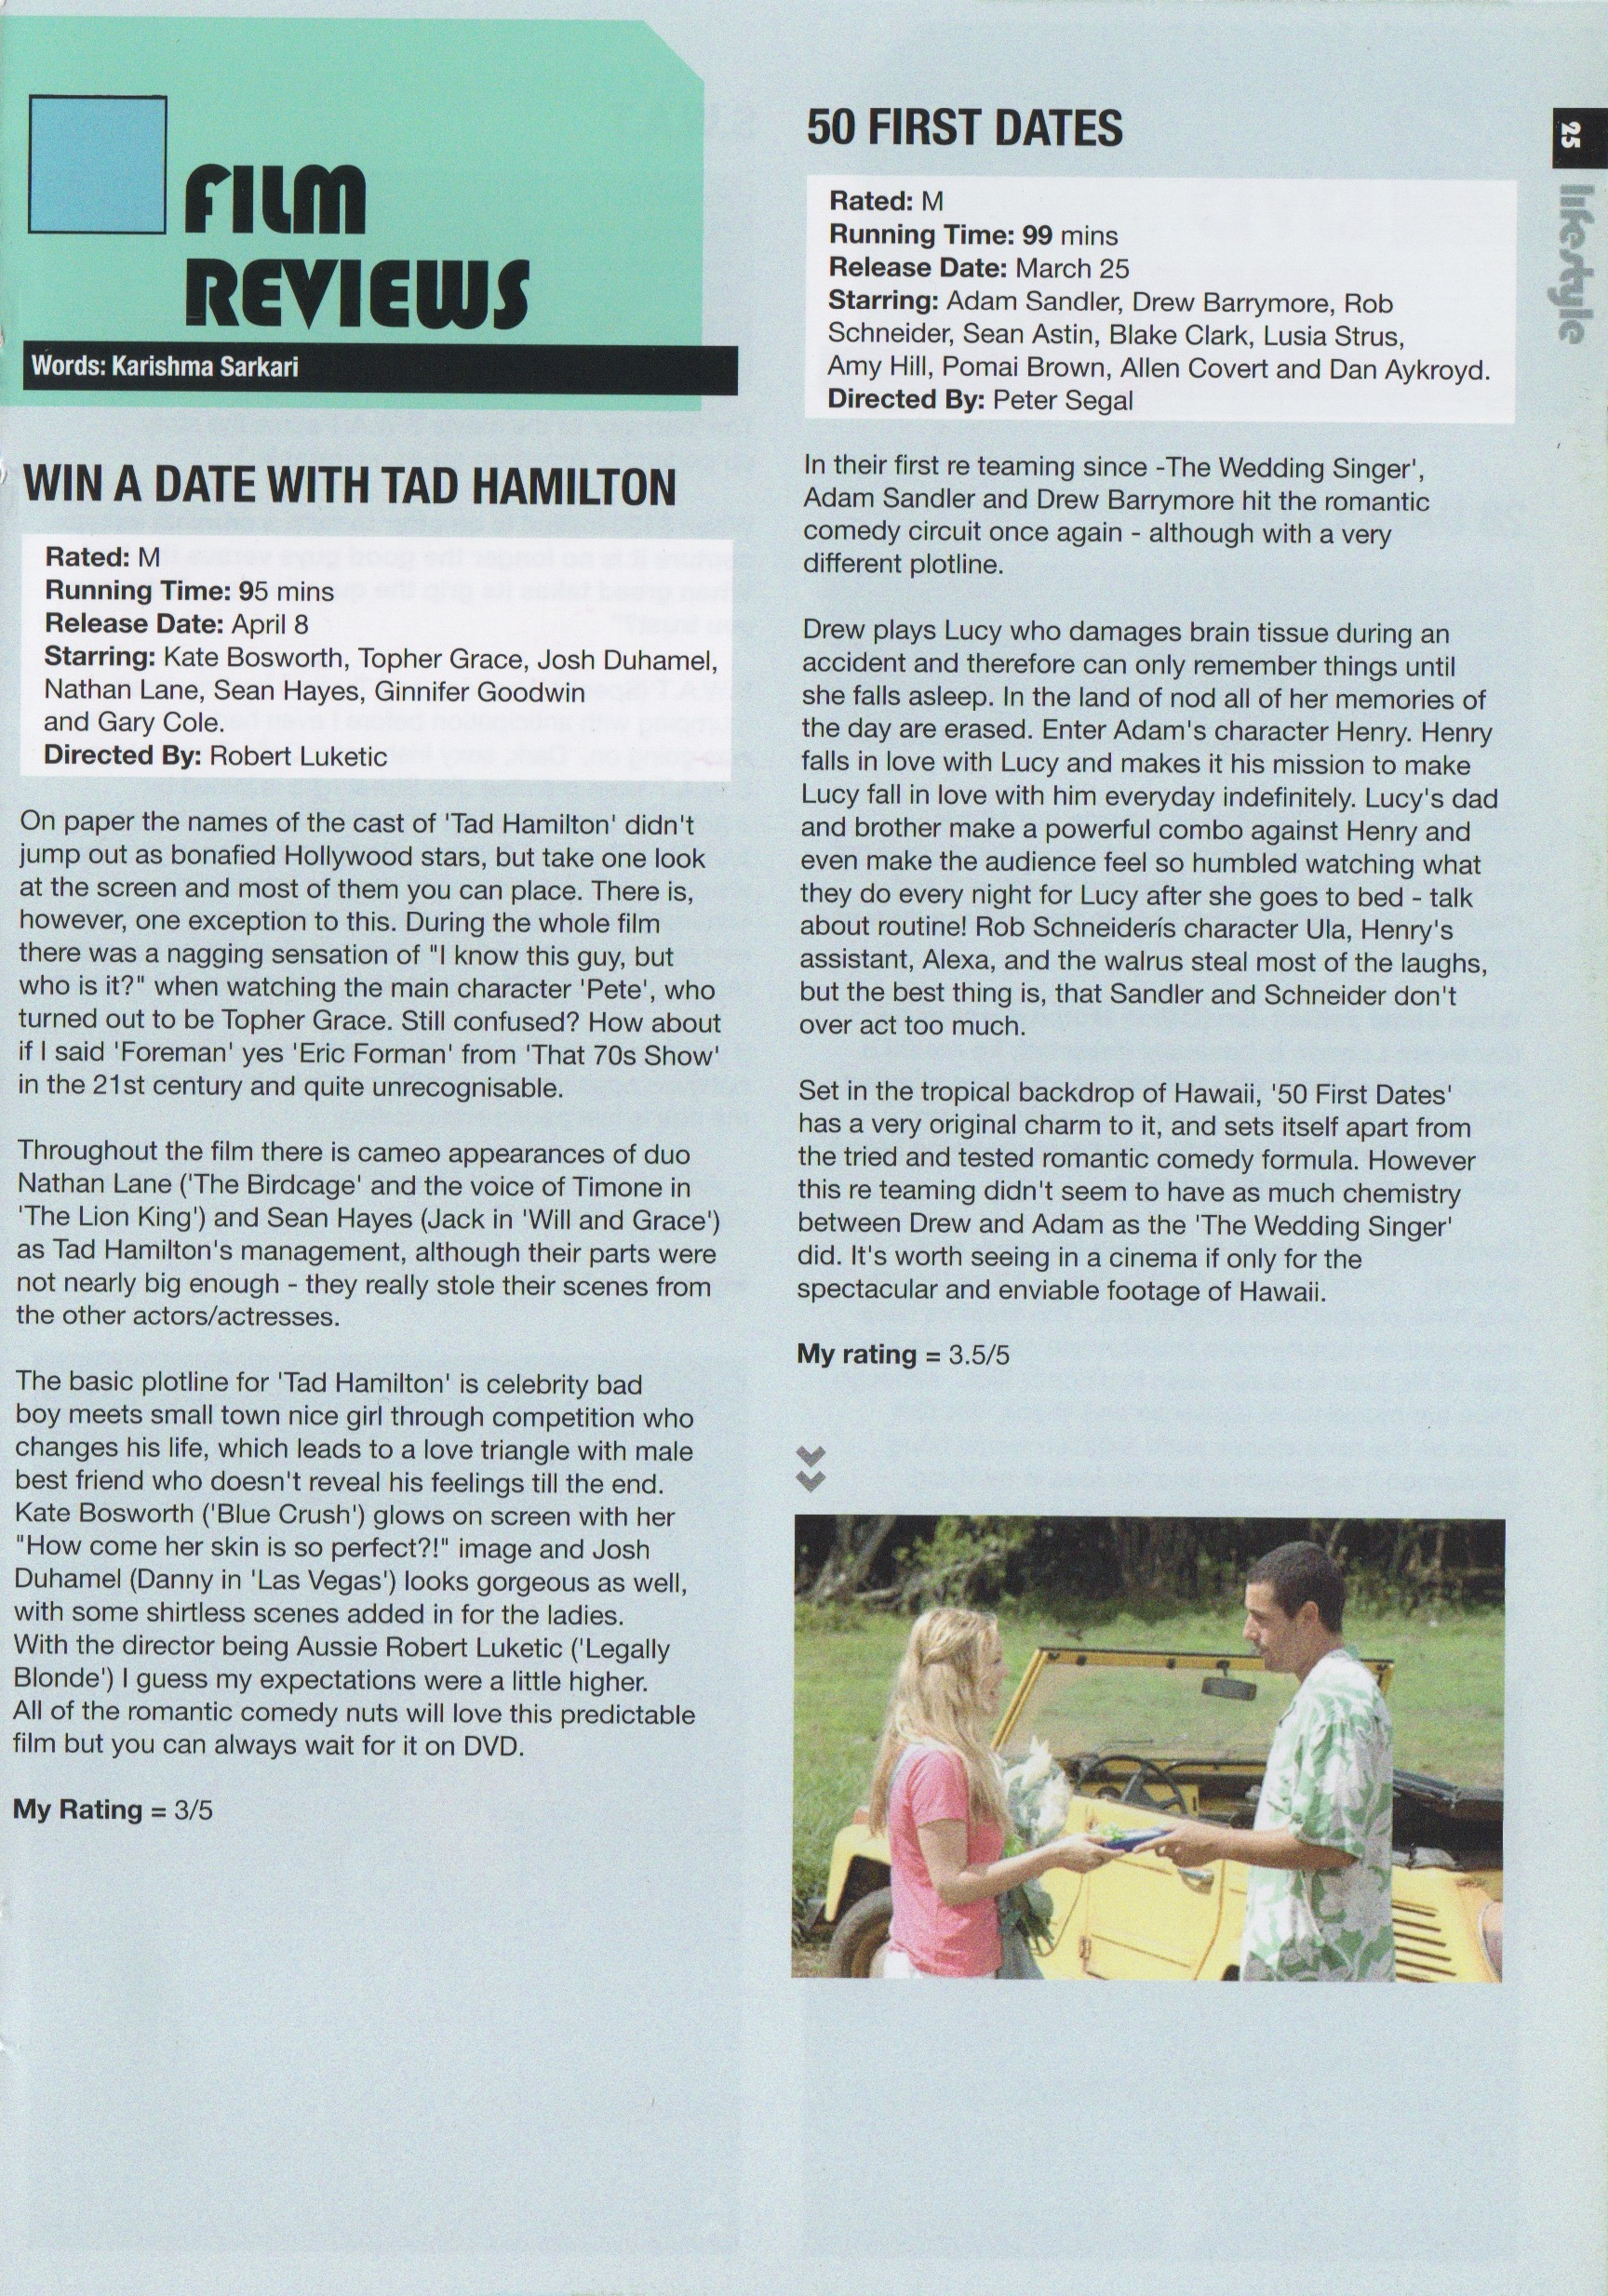 Film Reviews Win A Date With Tad Hamilton & 50 First Dates